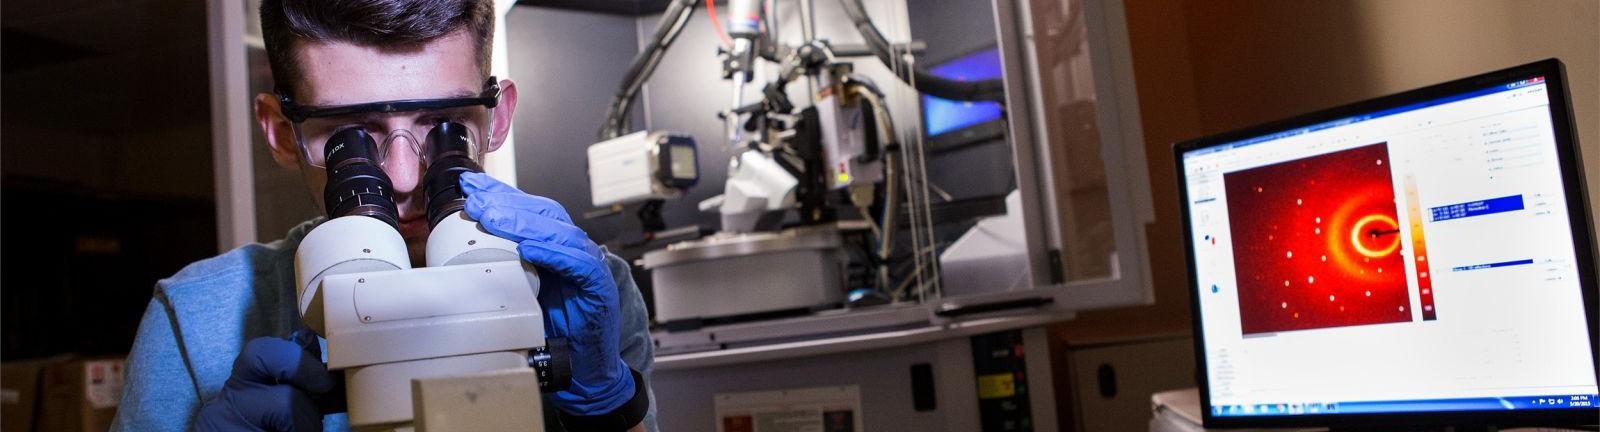 Chemistry student looking through a microscope in a lab surrounded by computer and equipment.